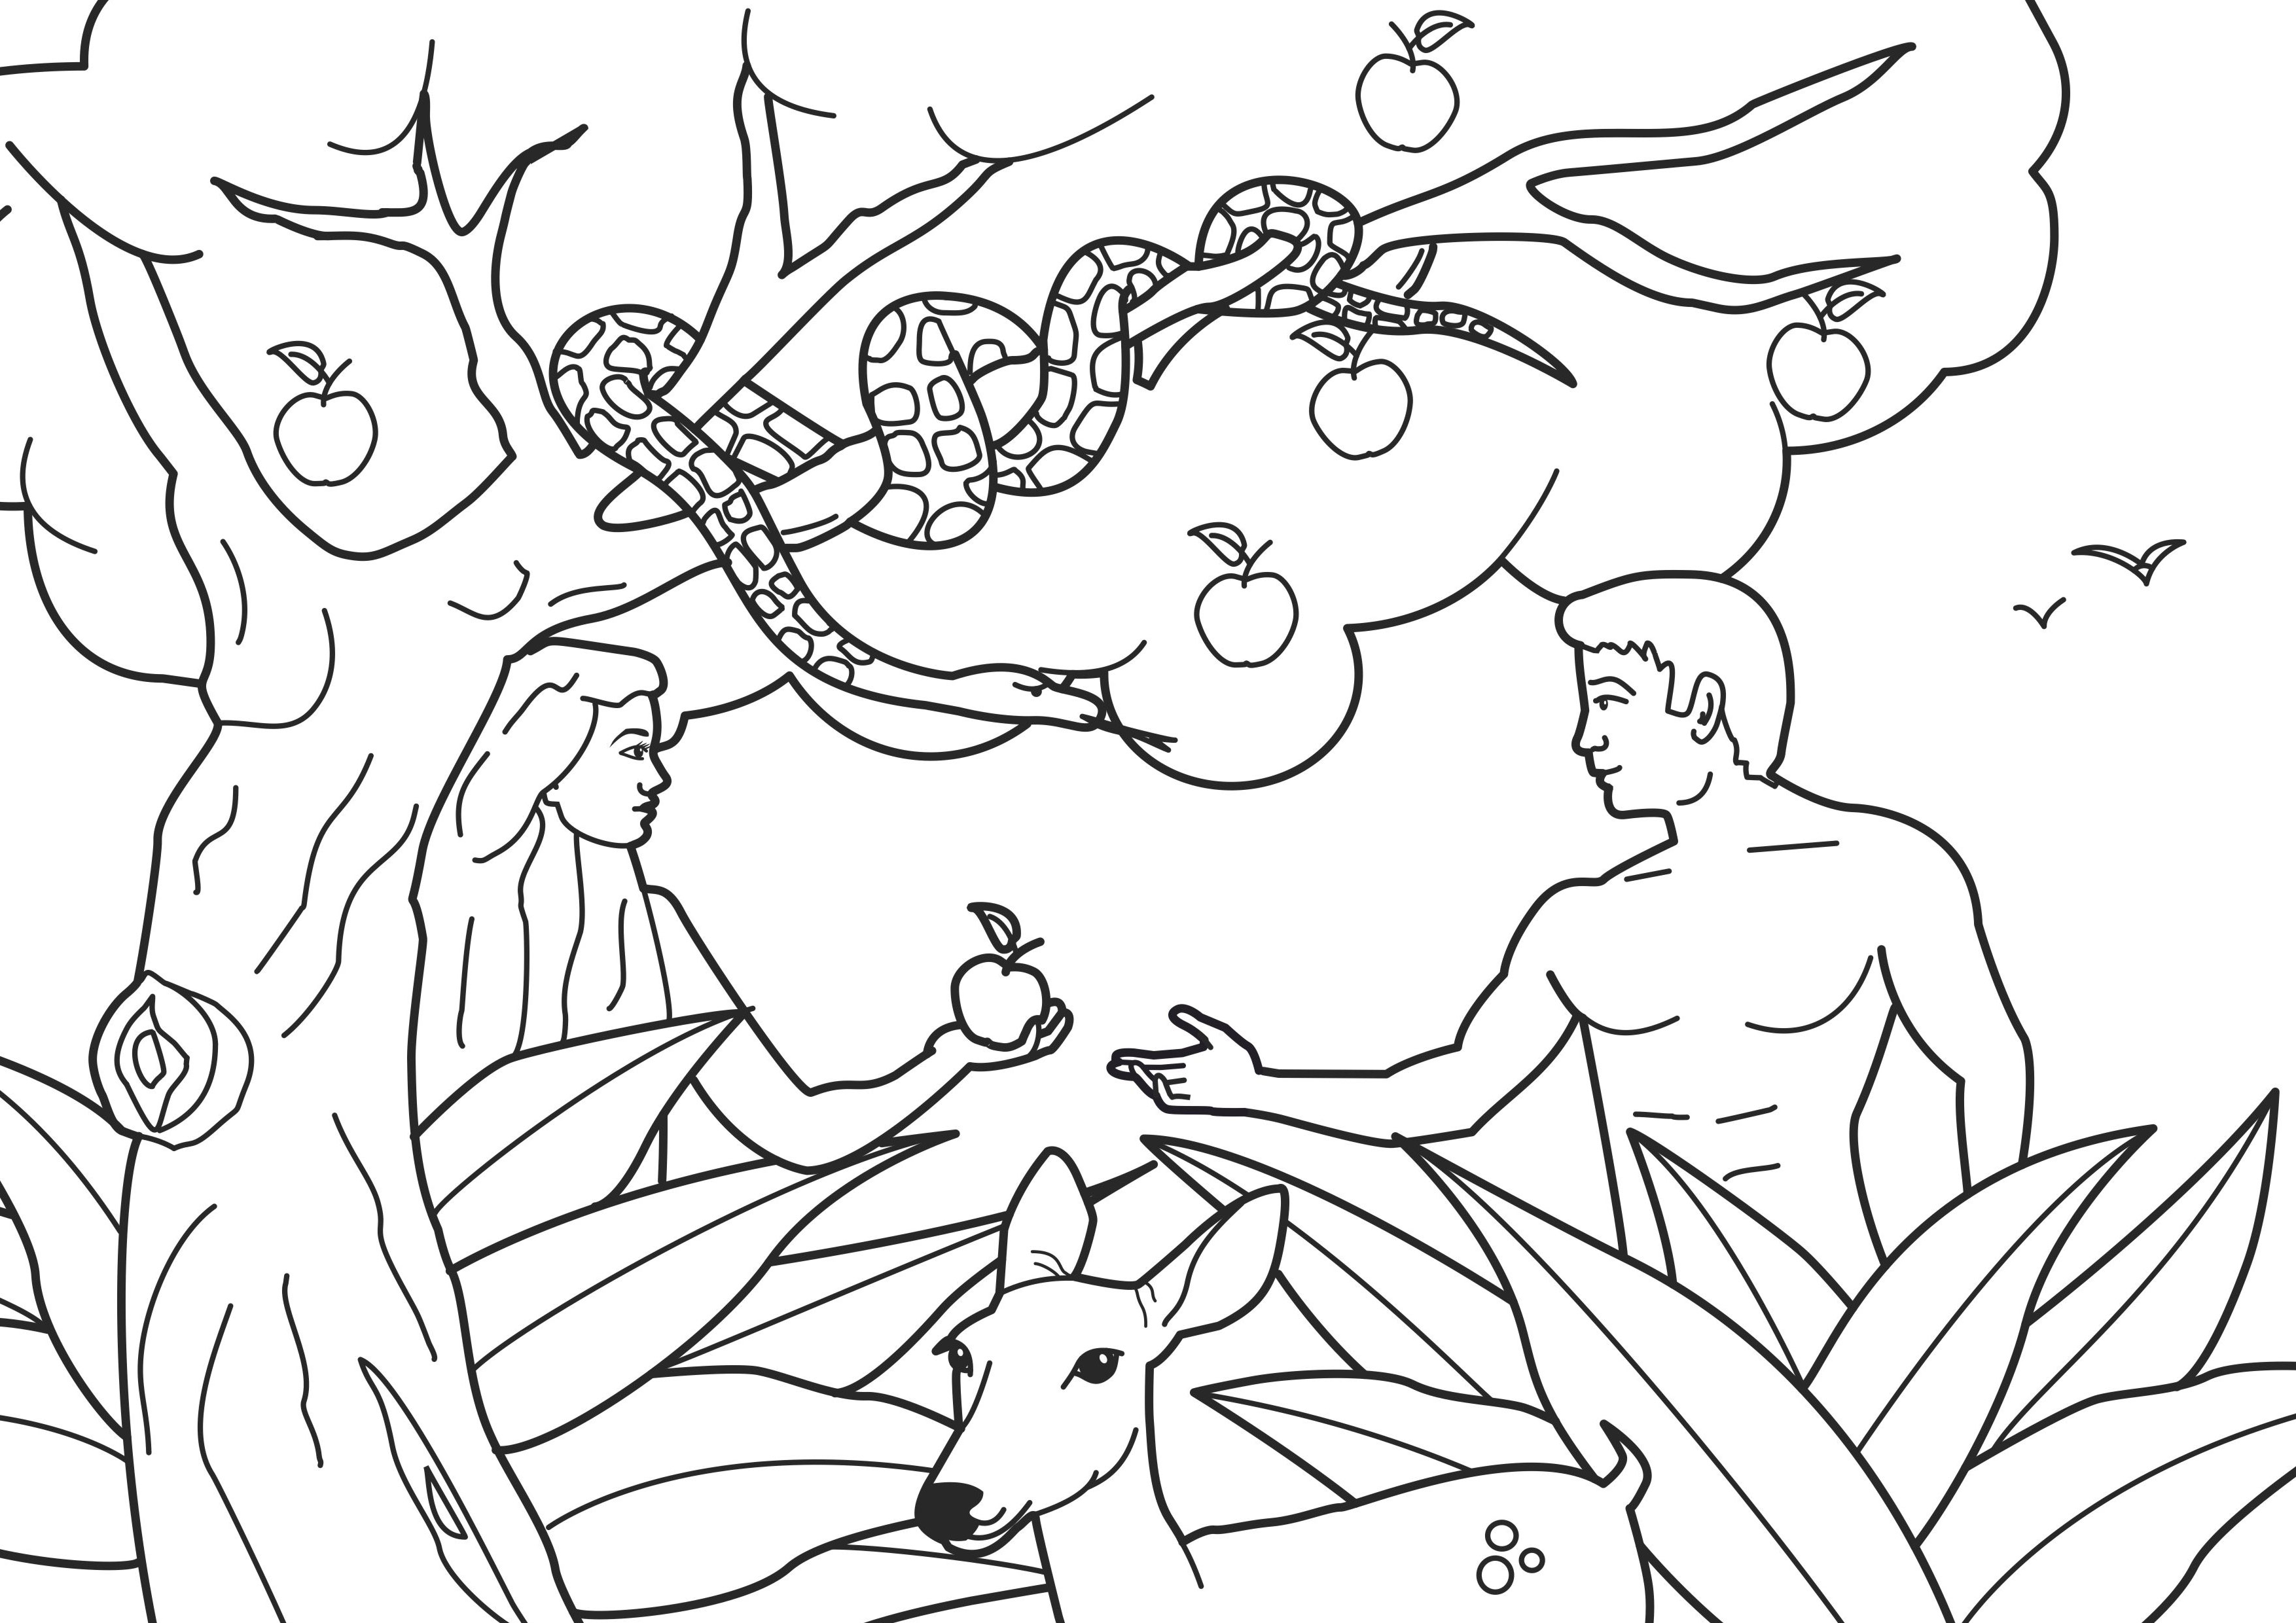 Free Printable Adam and Eve Coloring Pages for Kids Best Coloring Collection Of And Eve Coloring Pages Coloring Pages Download